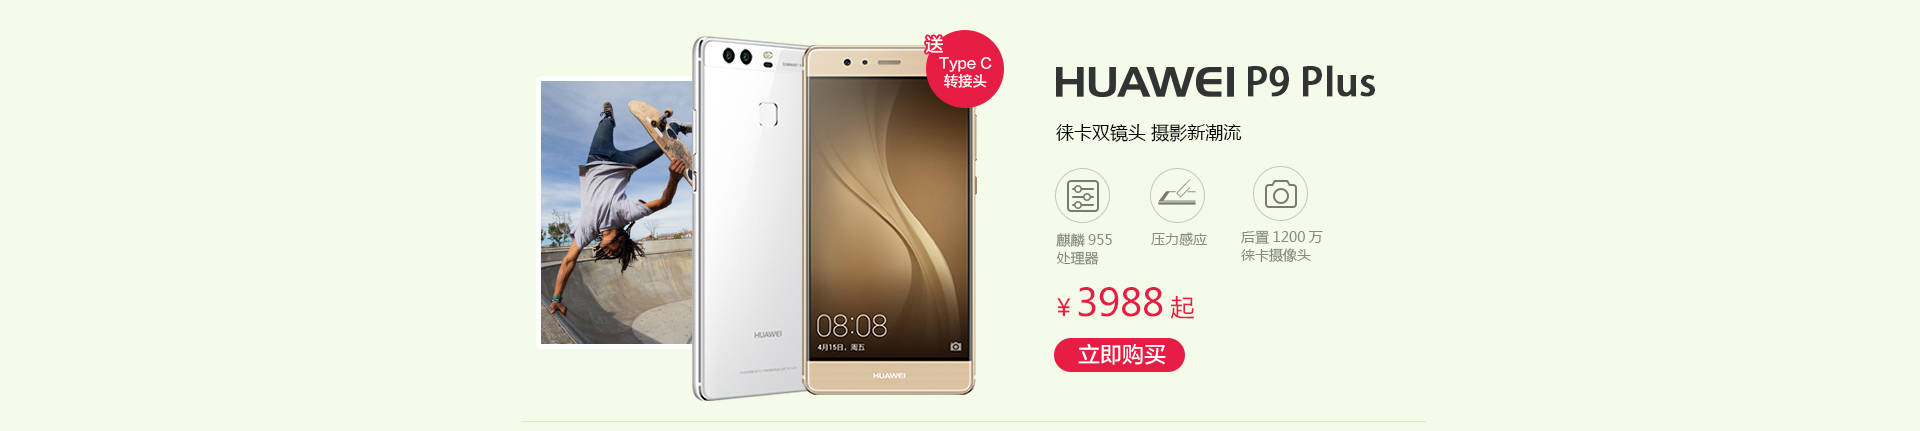 For Sale >> 【盛夏的日子,购机赢HUAWEI P9】- 华为商城